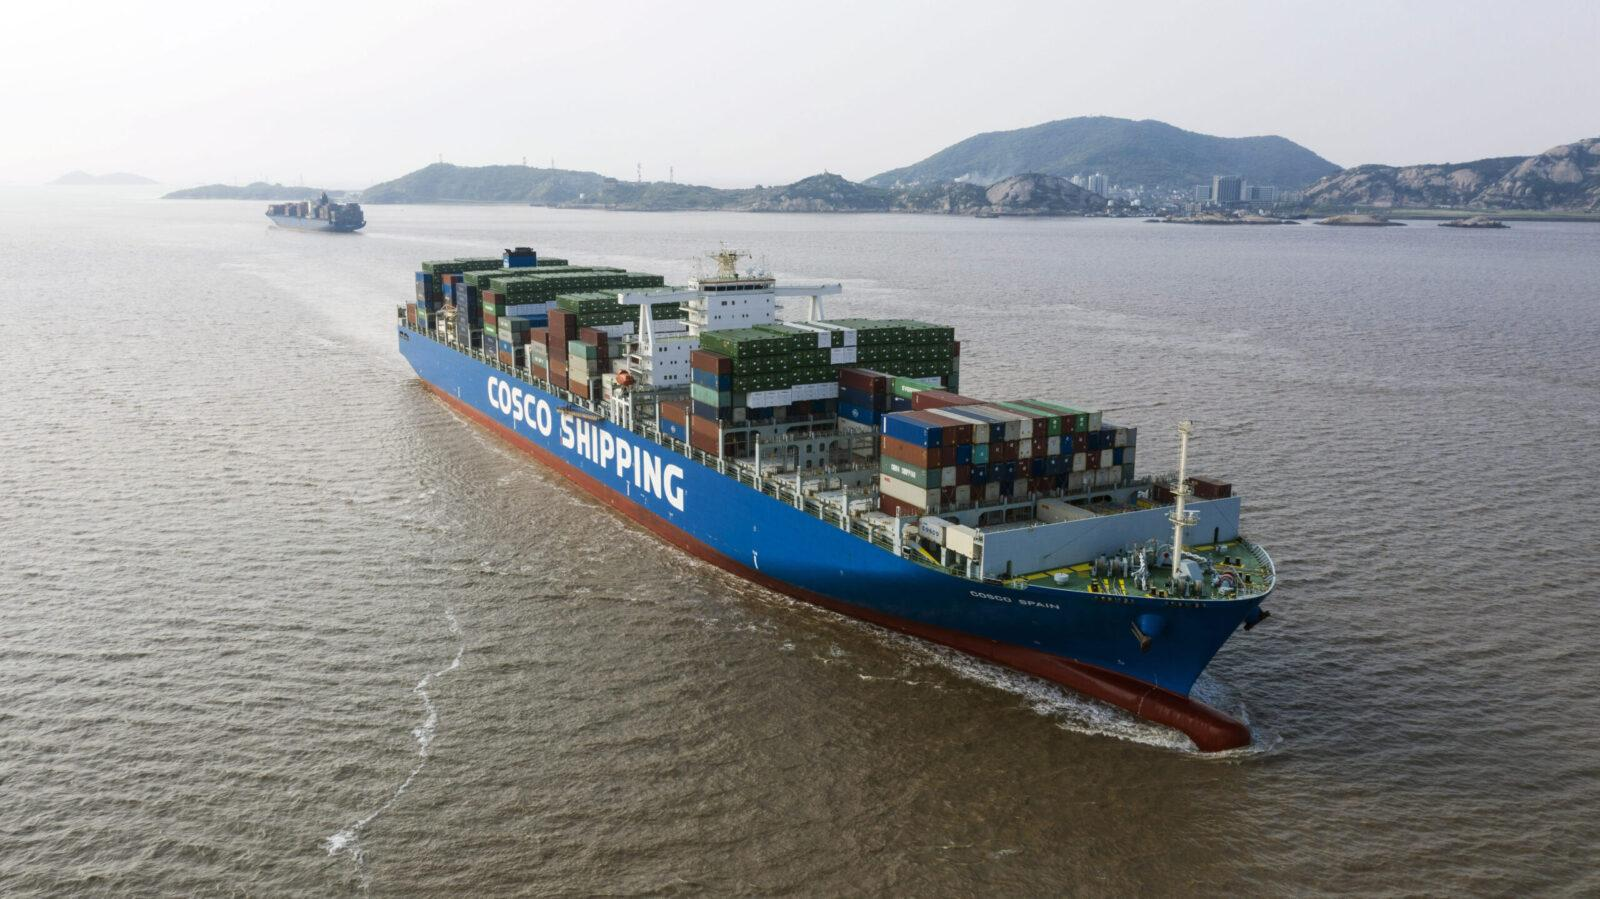 U.S. shipping regulator opens investigation into foreign carriers' business practices at American ports